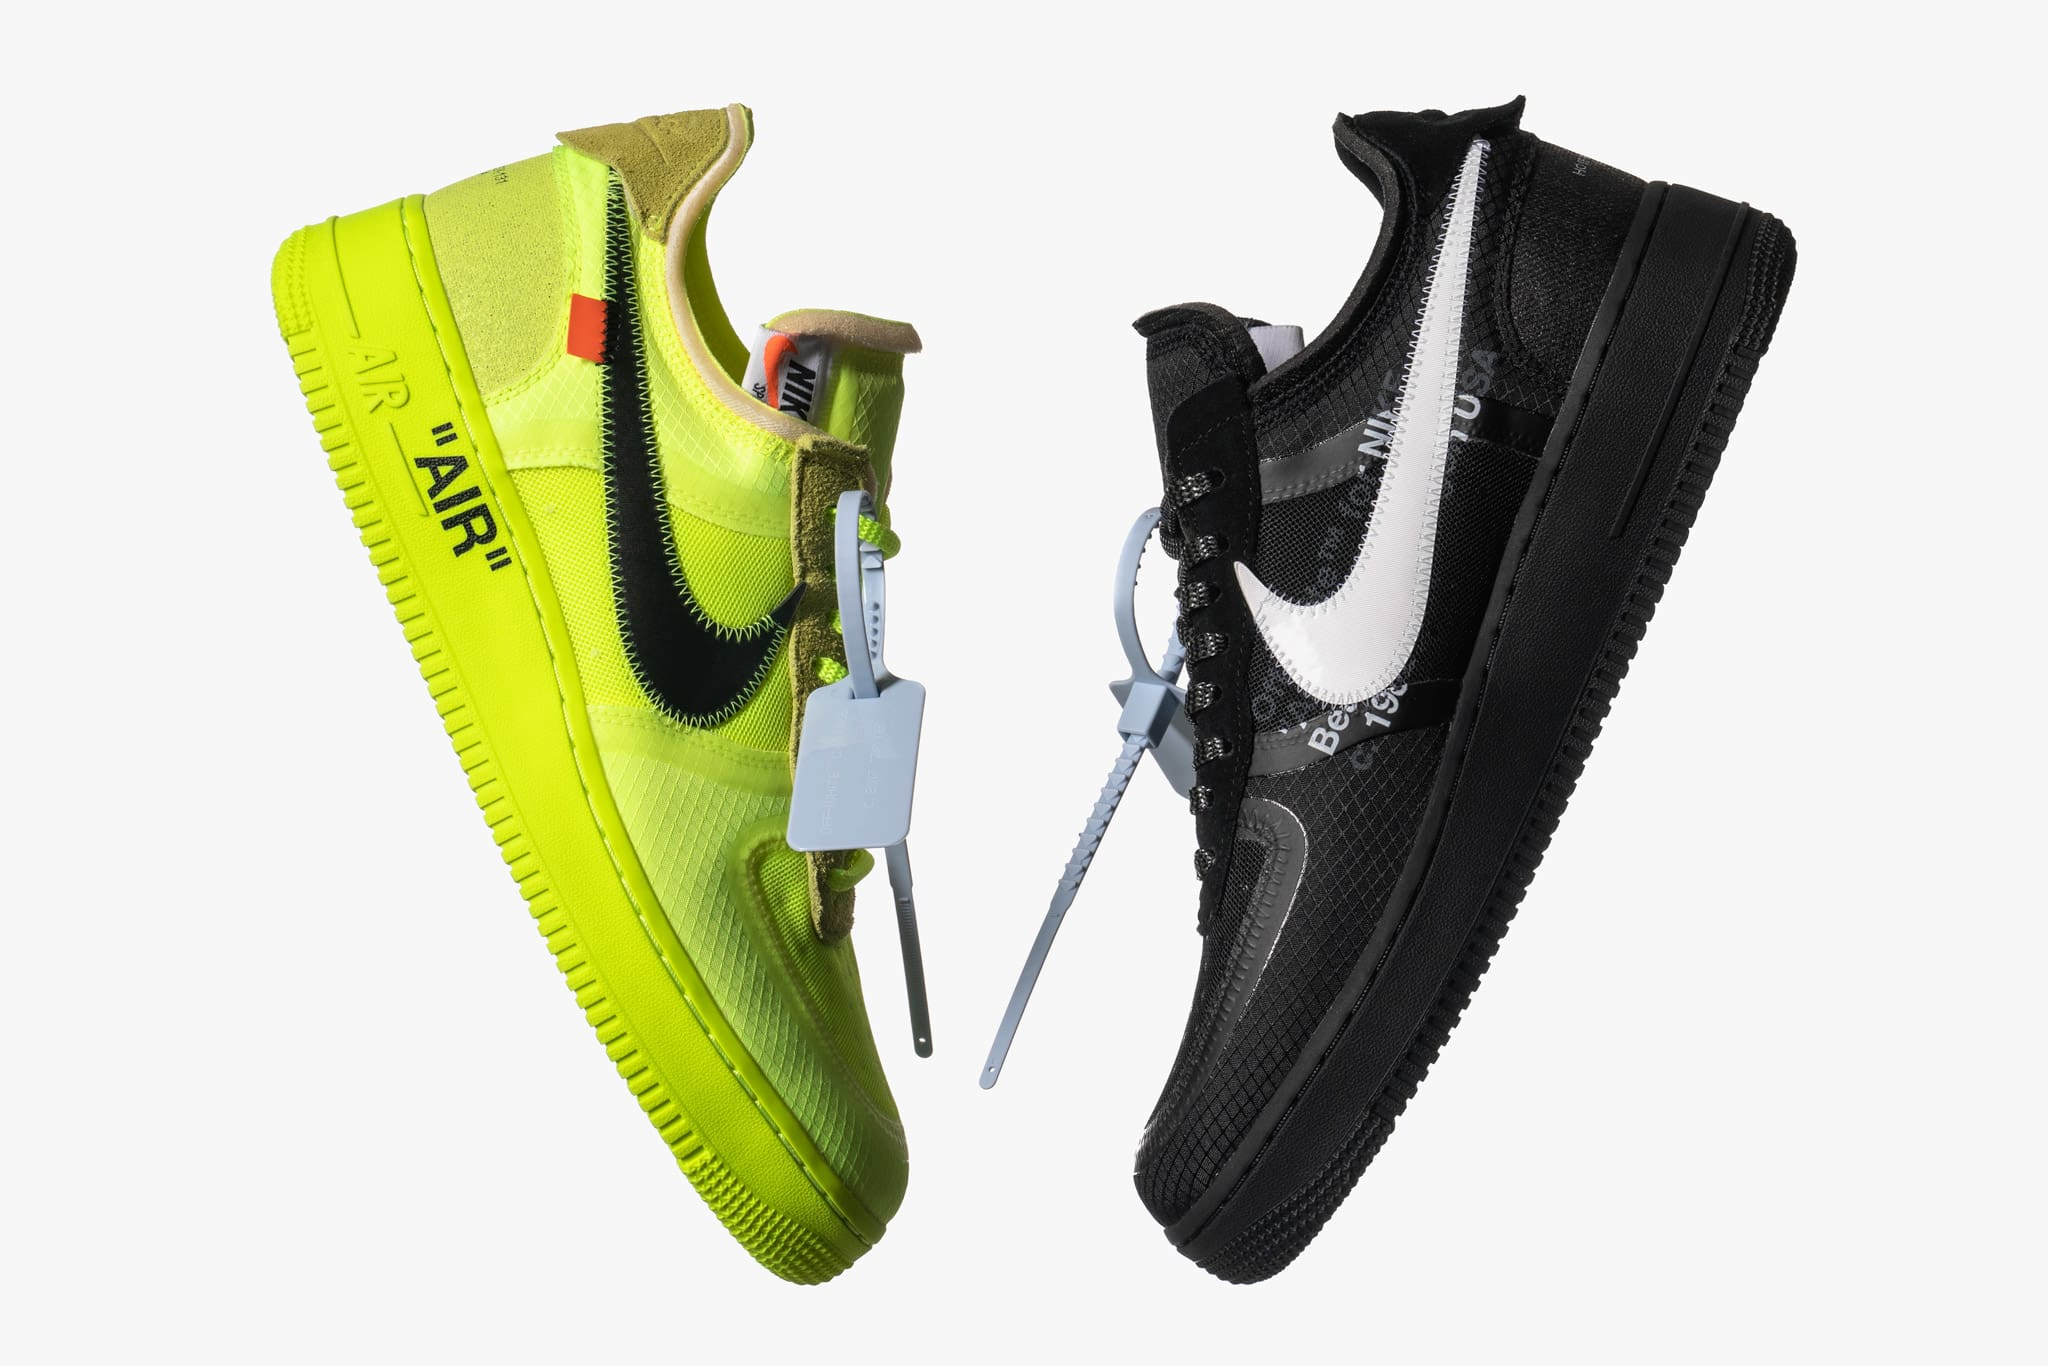 99f858a4bd Nike and Virgil Abloh continue their collaborative partnership this season  with the Nike x Off White The Ten Air Force 1. Available in a black and  white ...